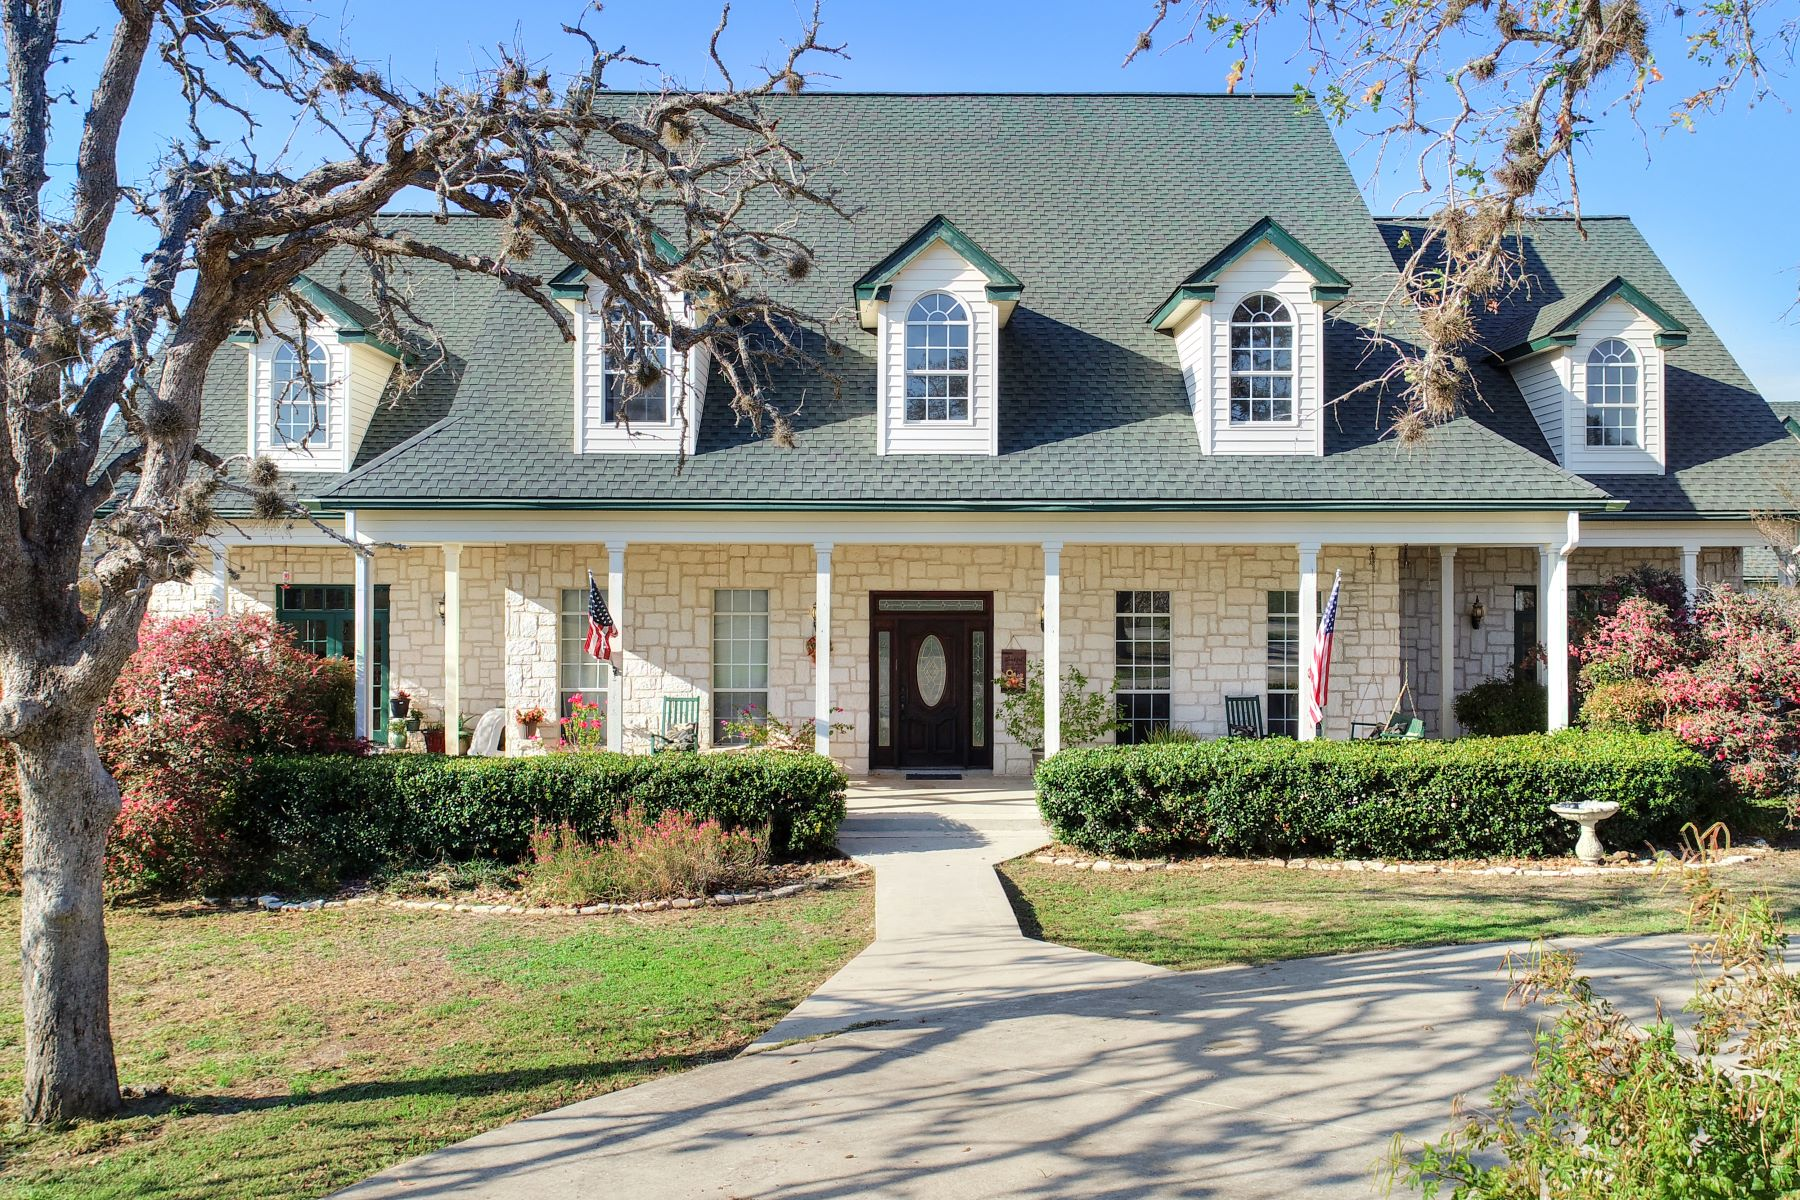 Single Family Homes for Active at Charming Home in Lake Valley 529 Lake Valley Drive La Vernia, Texas 78121 United States